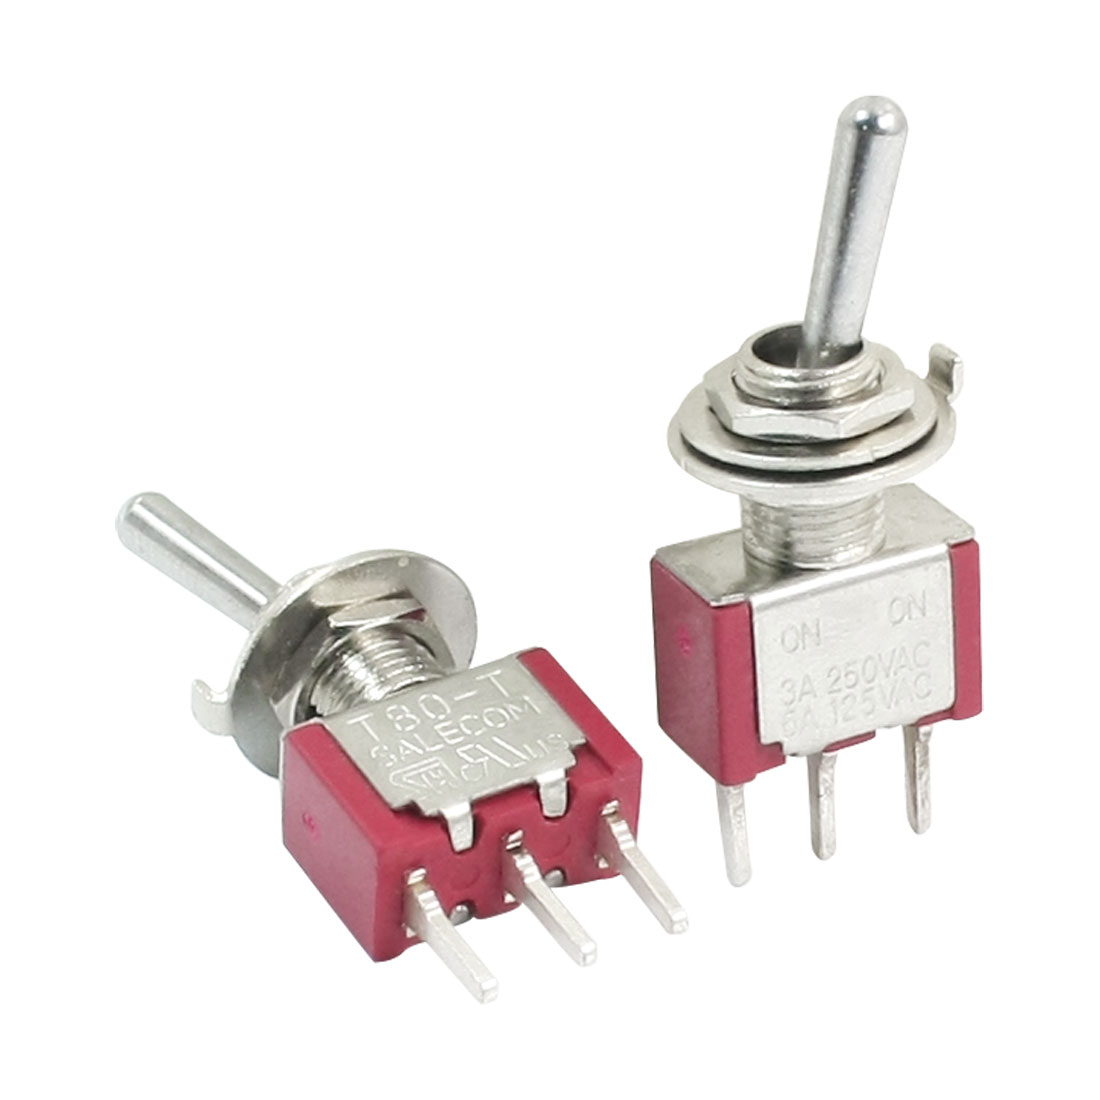 2PCS 6mm Mounting Hole Dia 2-Way SPDT Toggle Switches AC 250V/3A 125V/5A